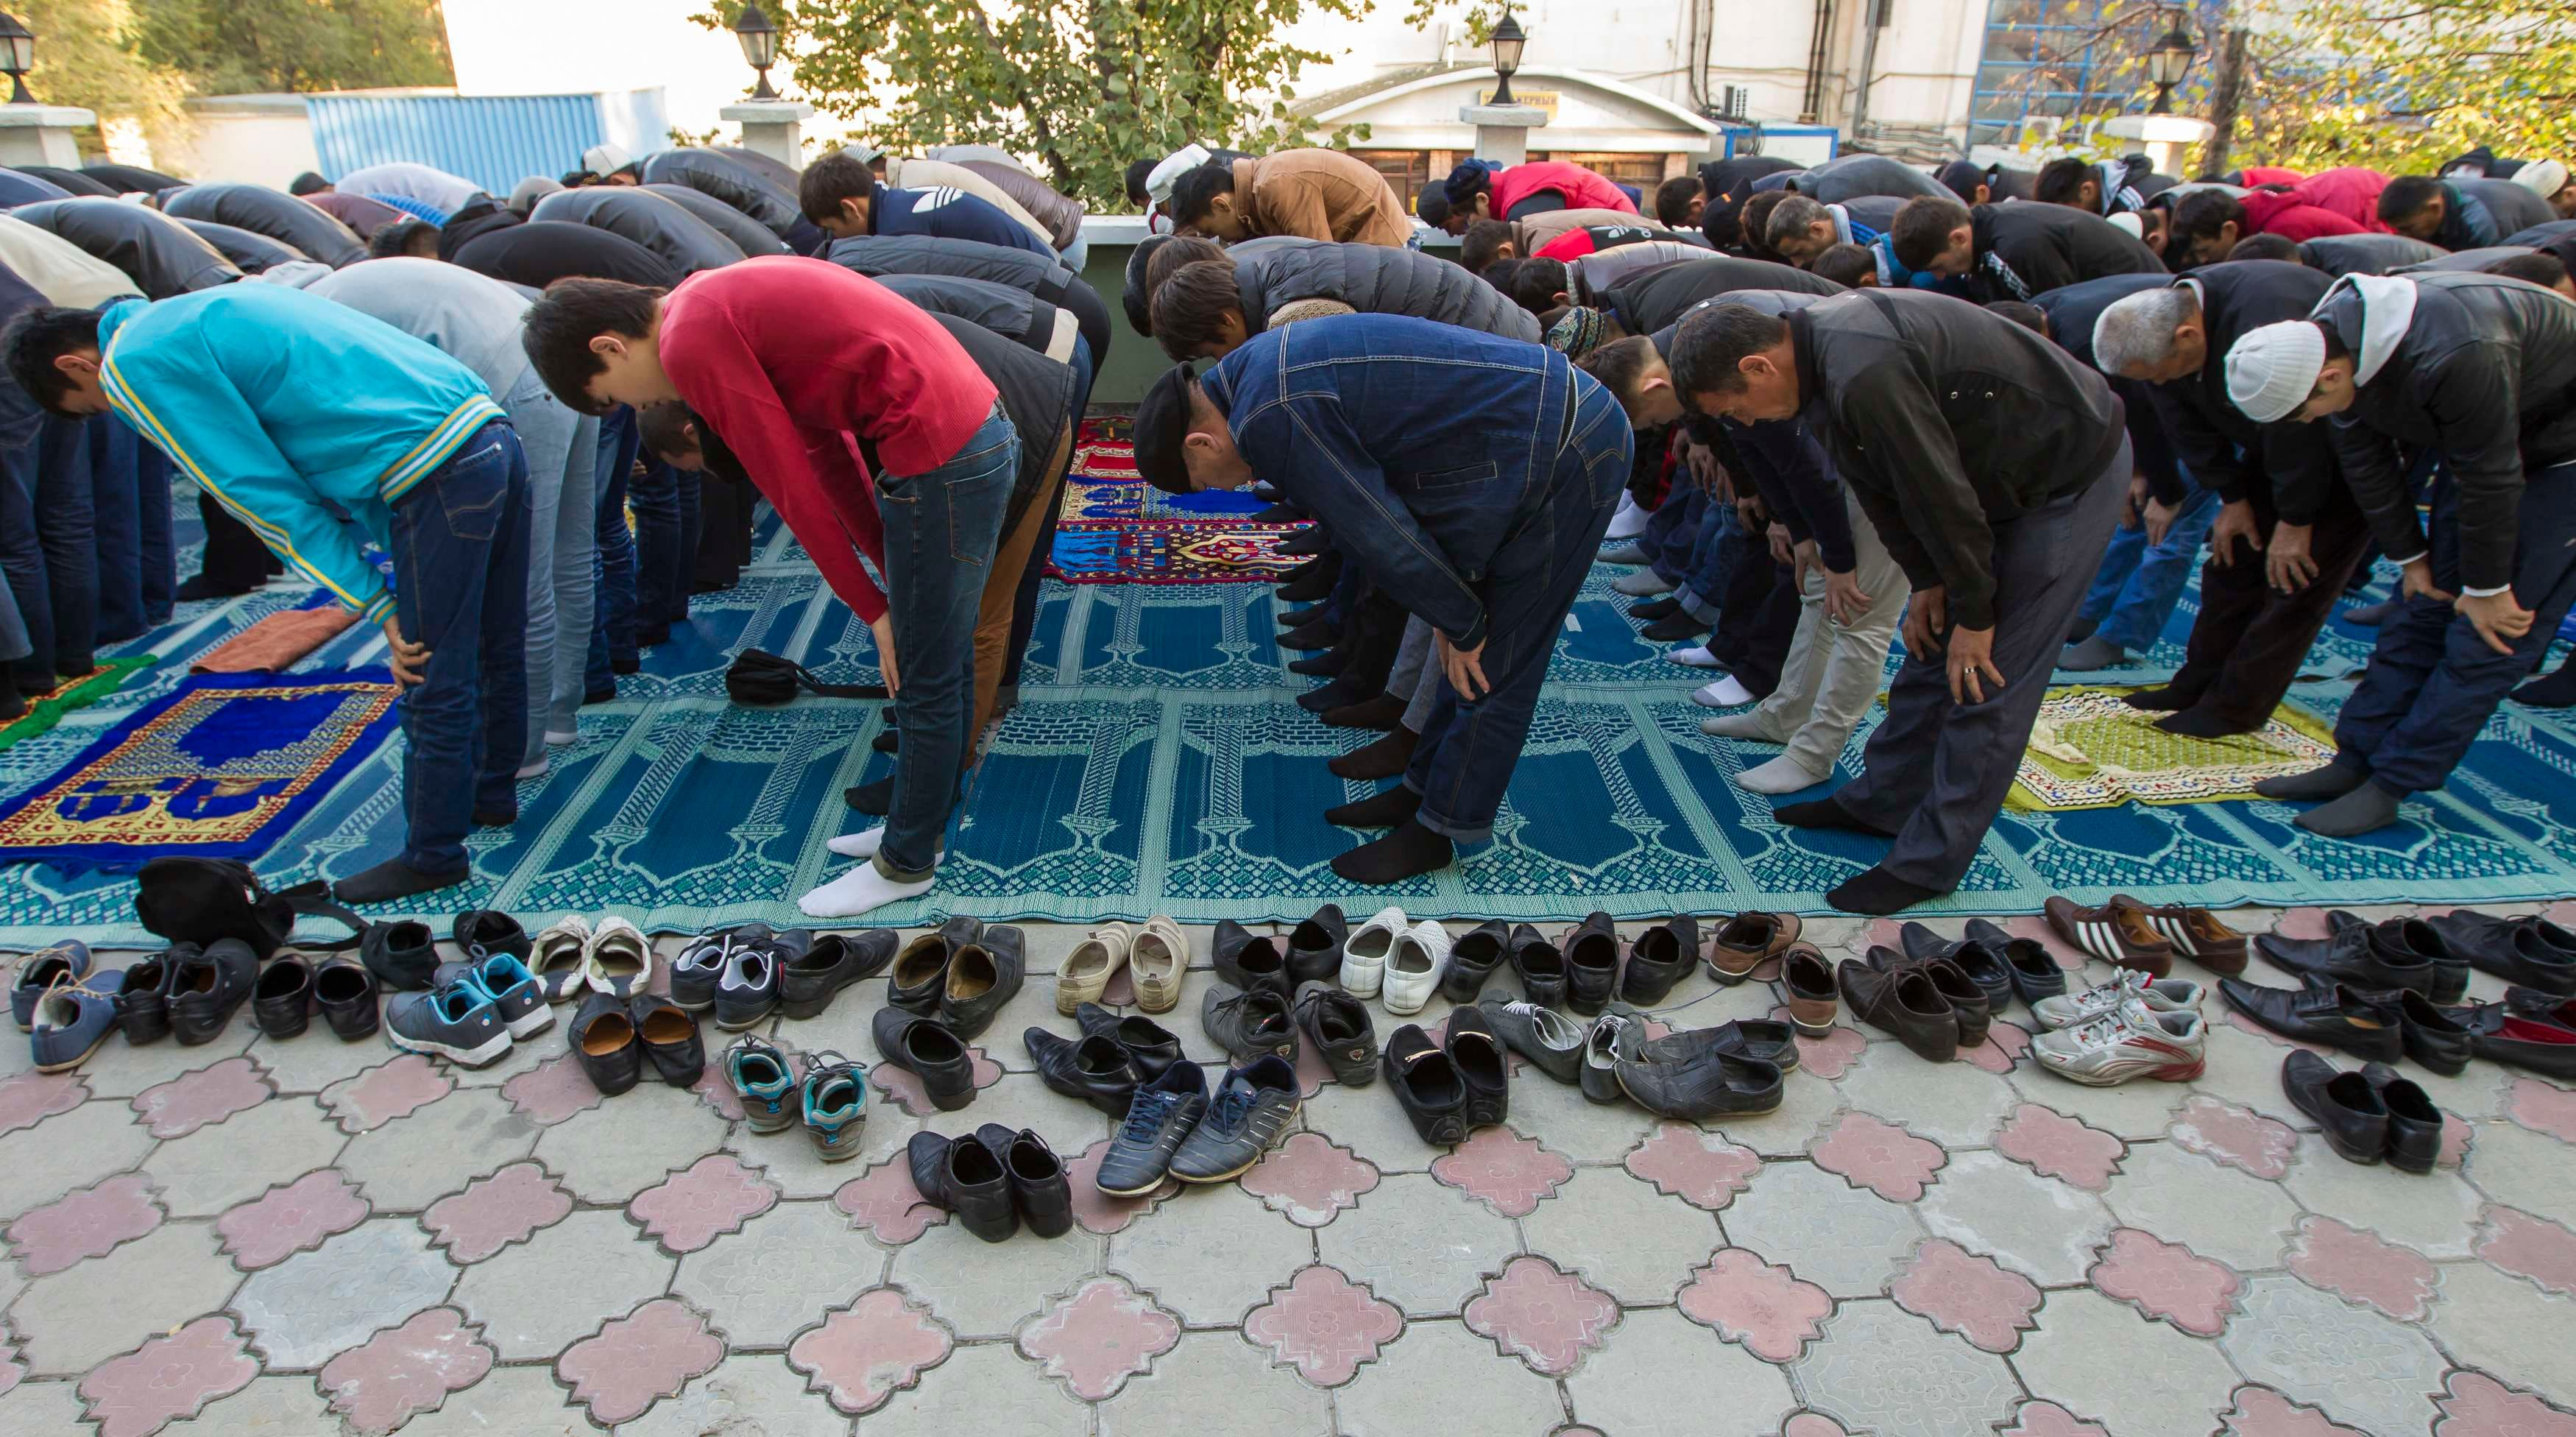 KAZAKHSTAN: Muslims pray during Kurban-Ait, also known as Eid al-Adha in Arabic, in a mosque in Almaty October 15, 2013. (Reuters)